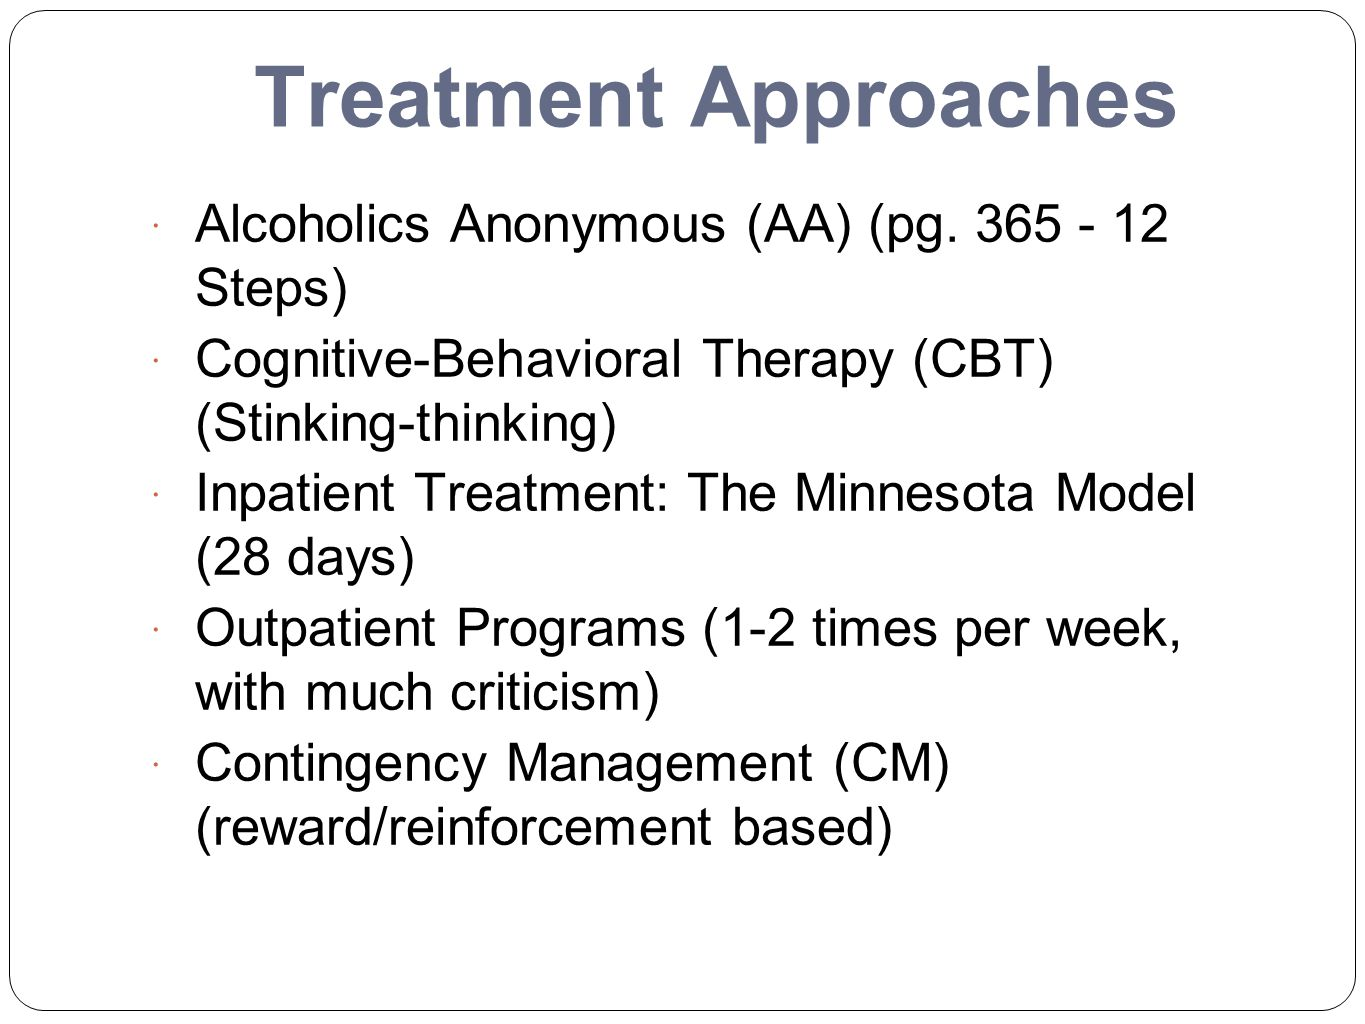 Treatment Approaches Alcoholics Anonymous (AA) (pg. 365 - 12 Steps)